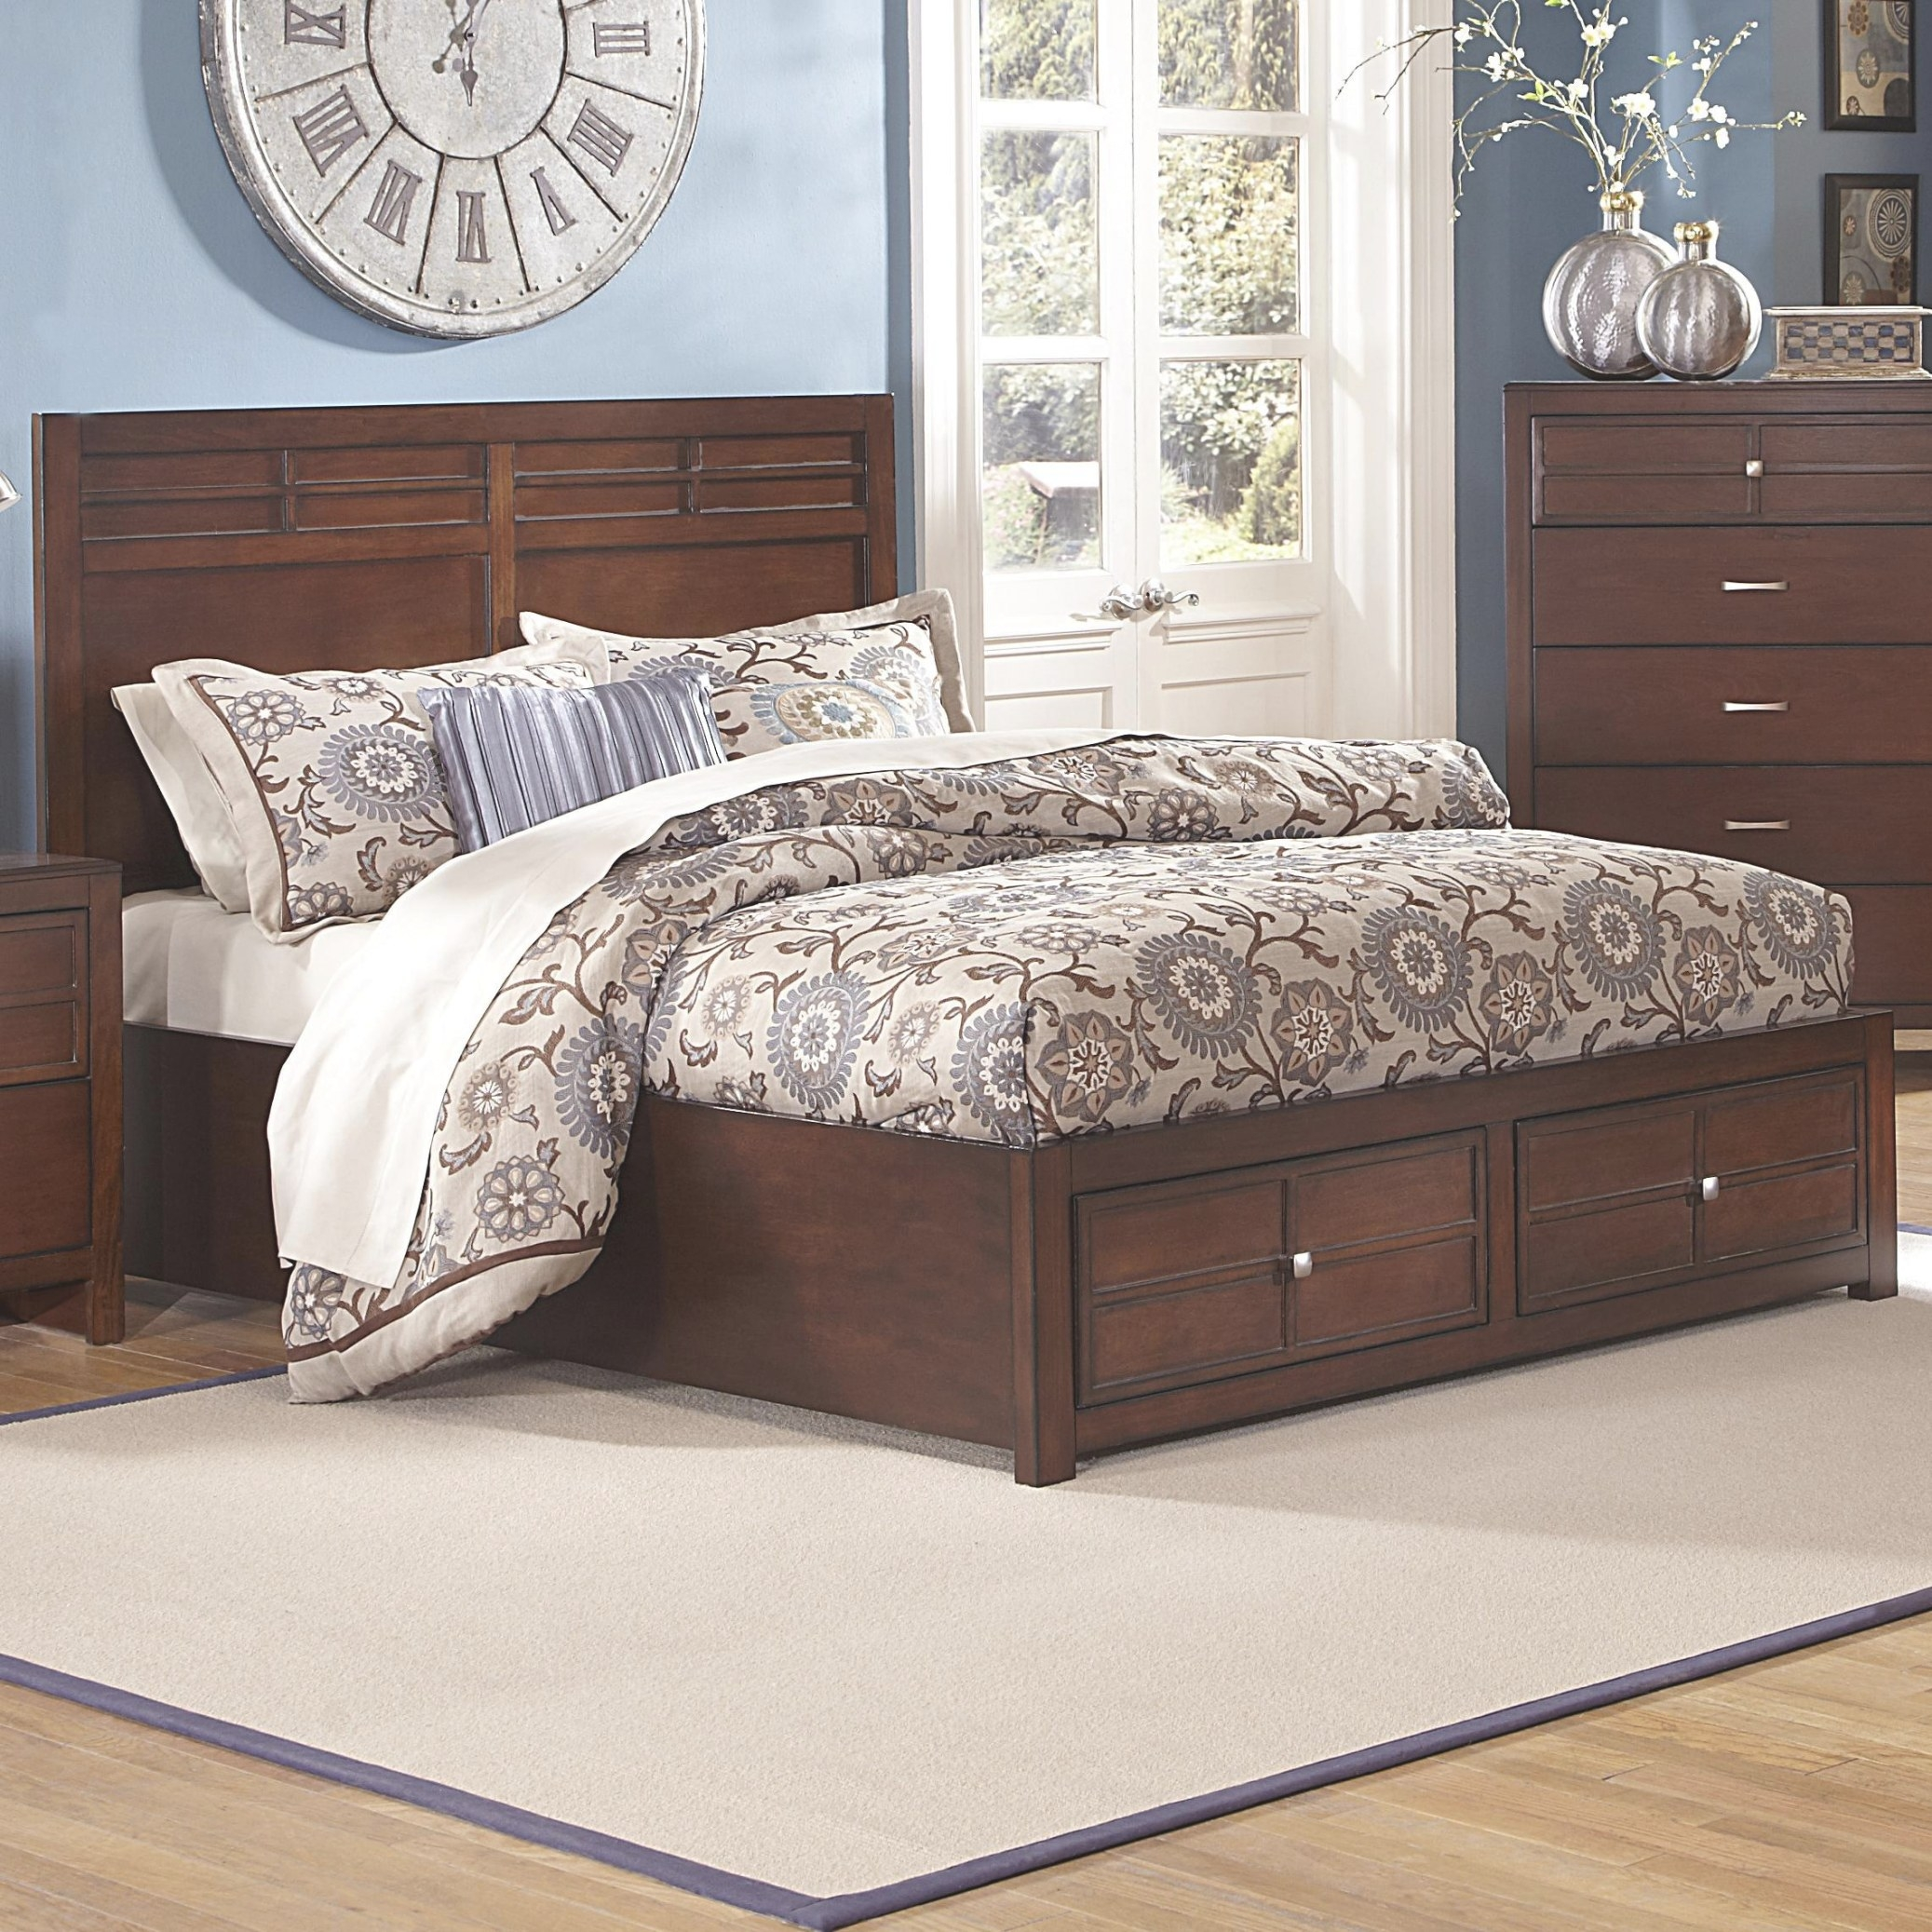 New Classic Kensington Queen Low-Profile Bed With Storage with regard to Queen Platform Bed With Storage And Headboard